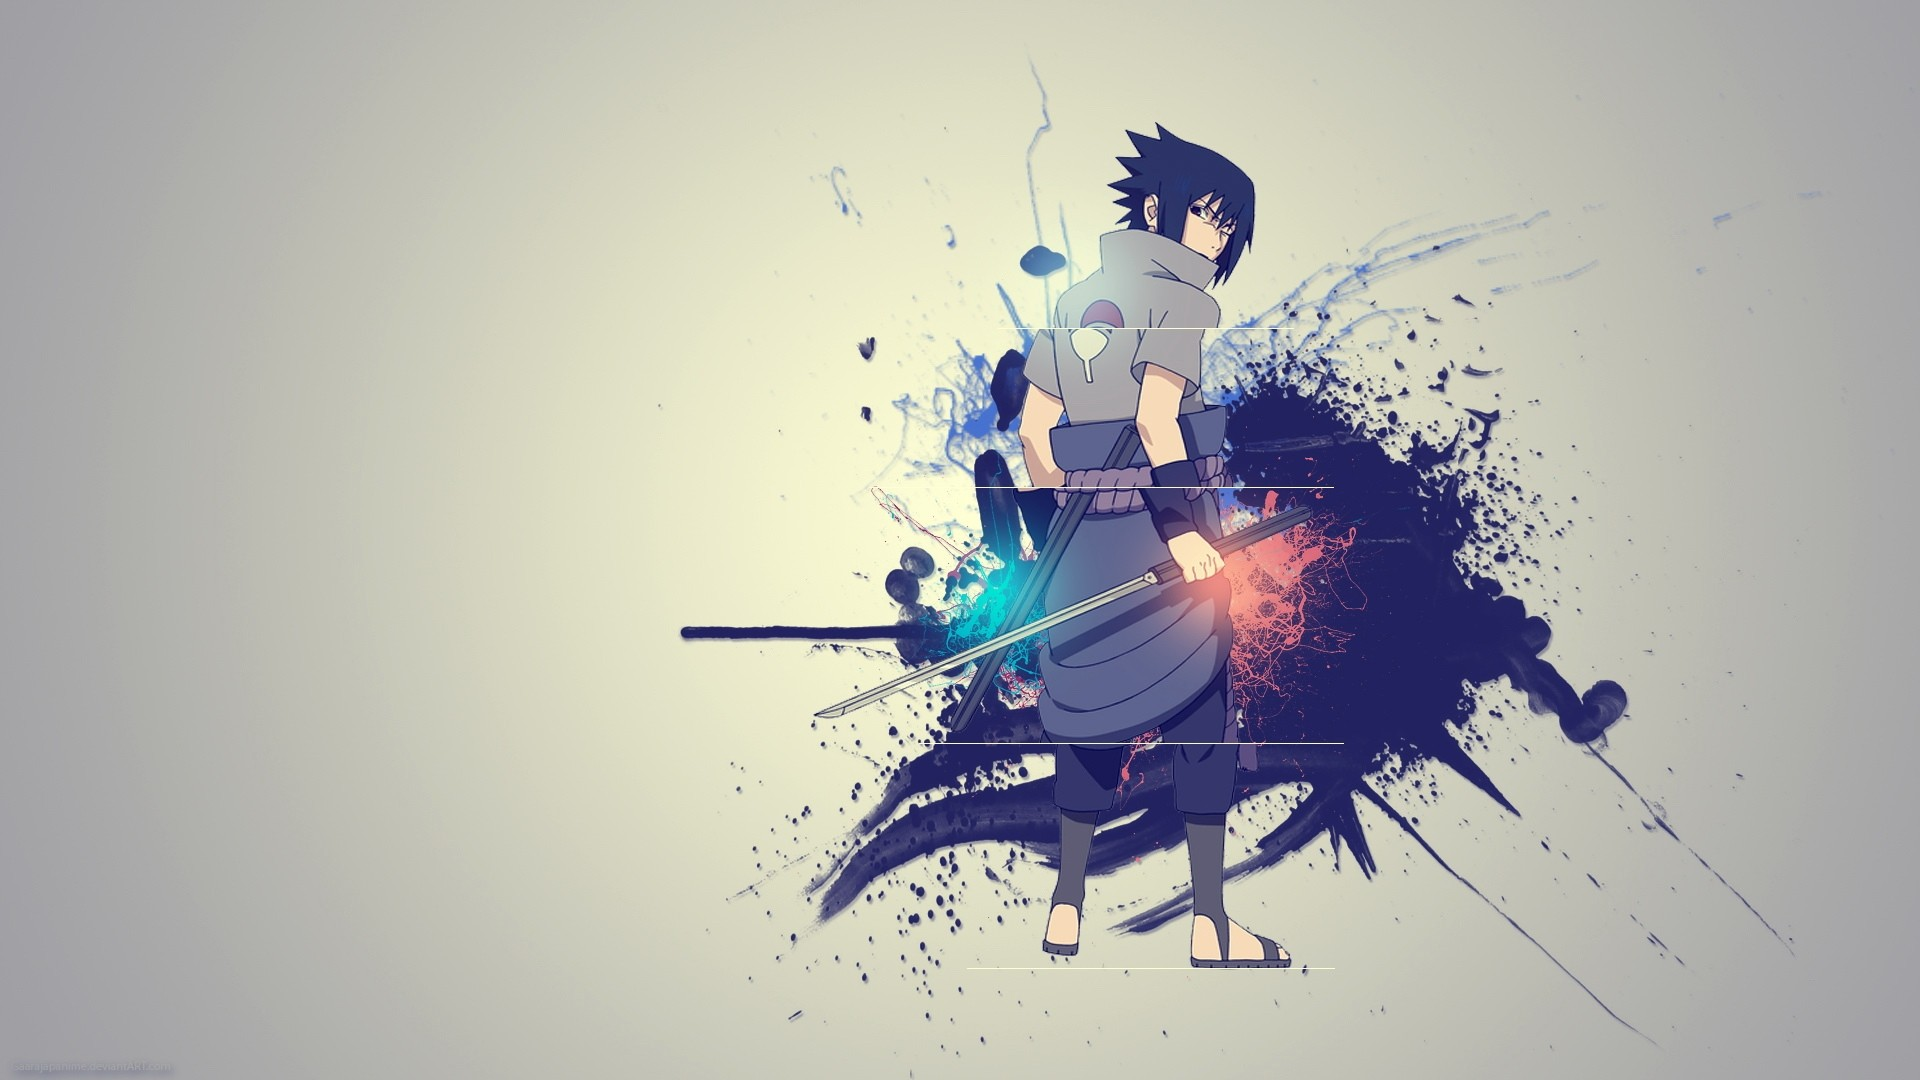 50 Sasuke Hd Wallpaper On Wallpapersafari